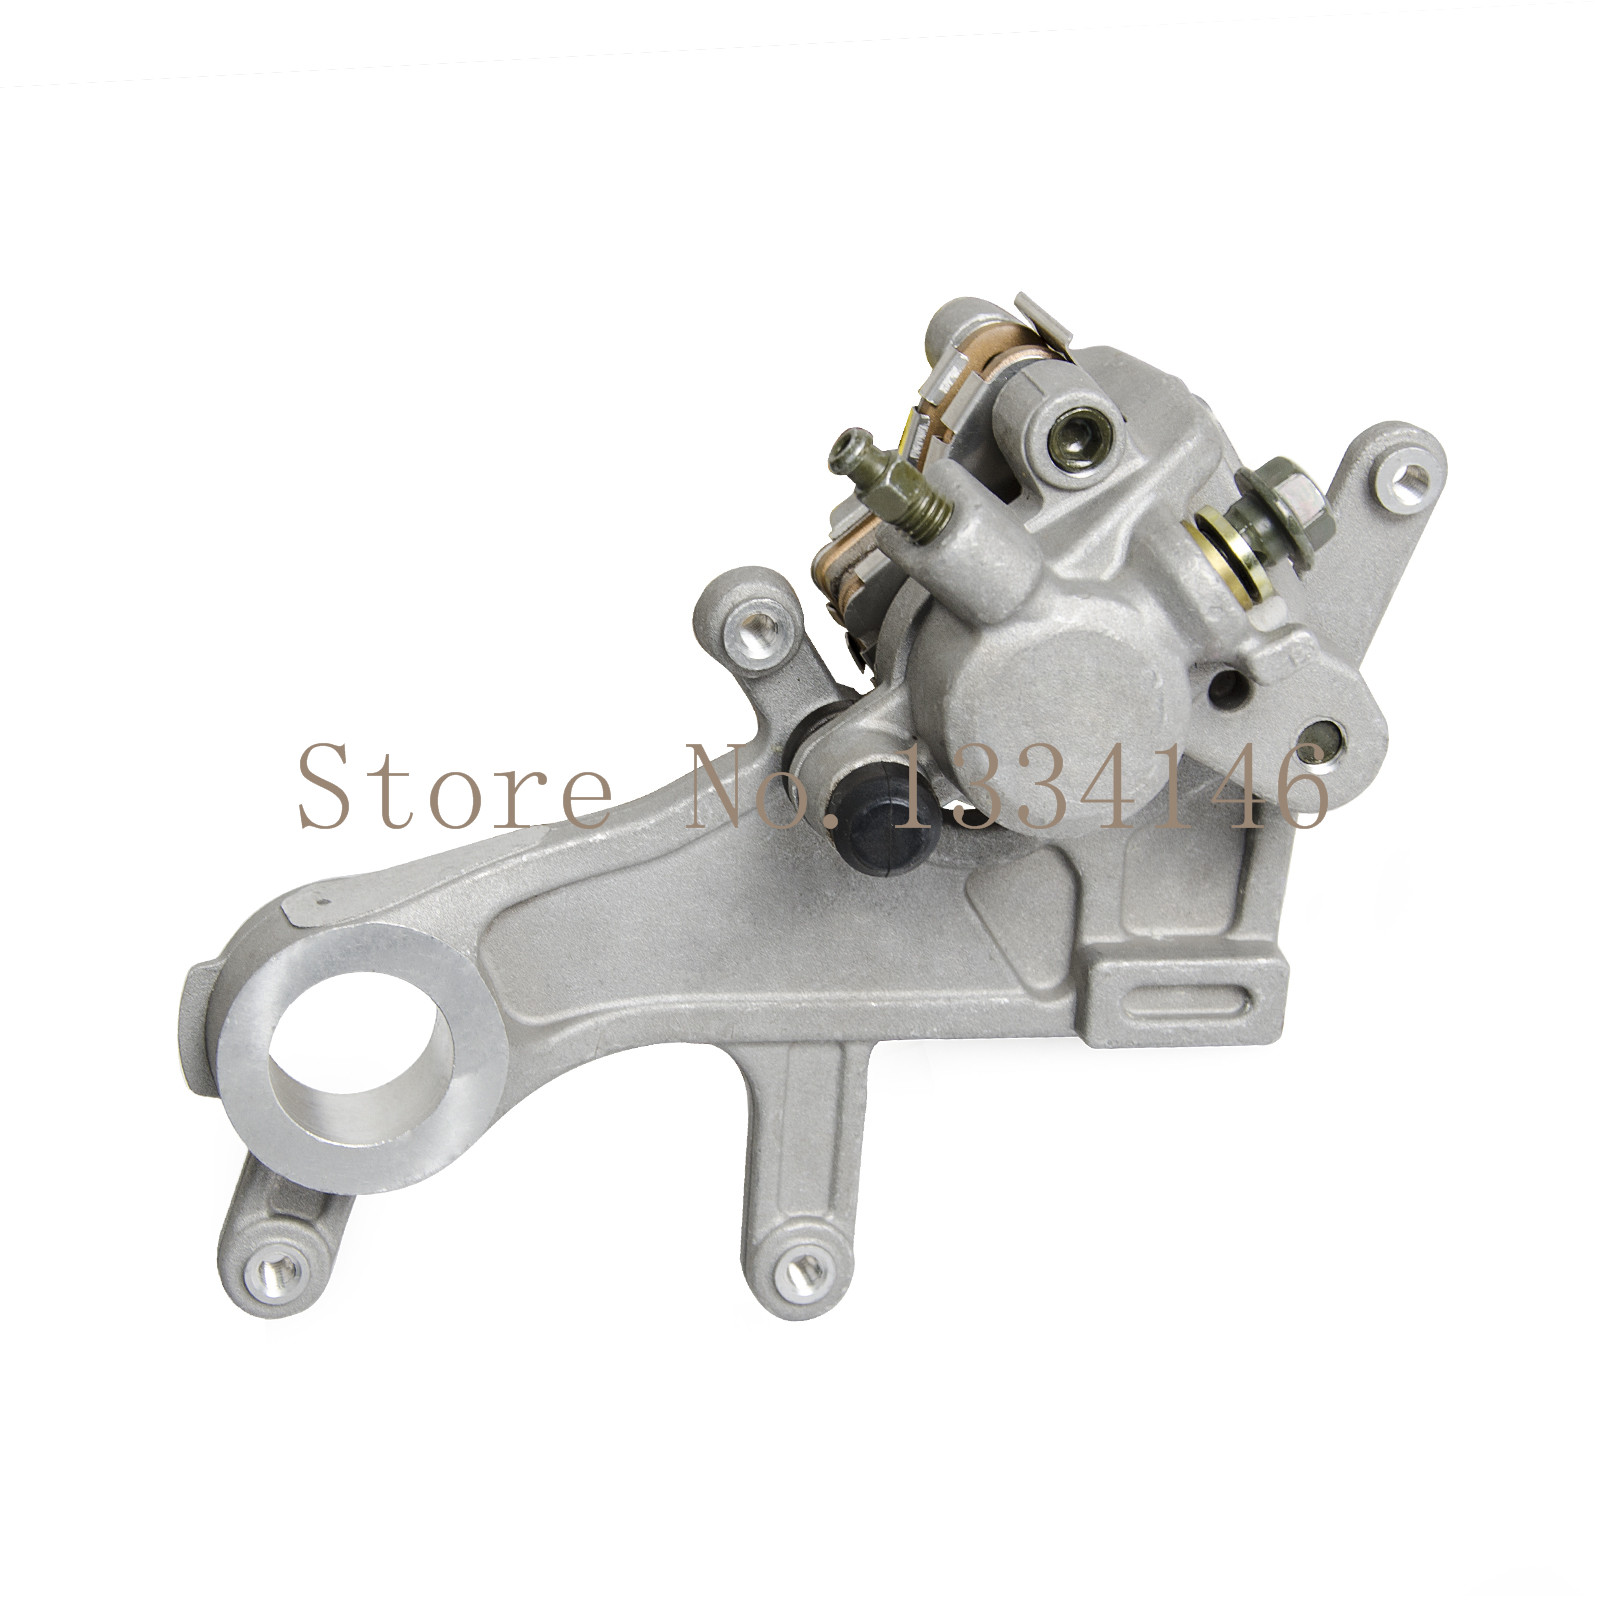 small resolution of detail feedback questions about motorcycle rear brake caliper for honda crf450r 2002 2015 2016 crf450x crf 450r 450x 2005 2006 on aliexpress com alibaba